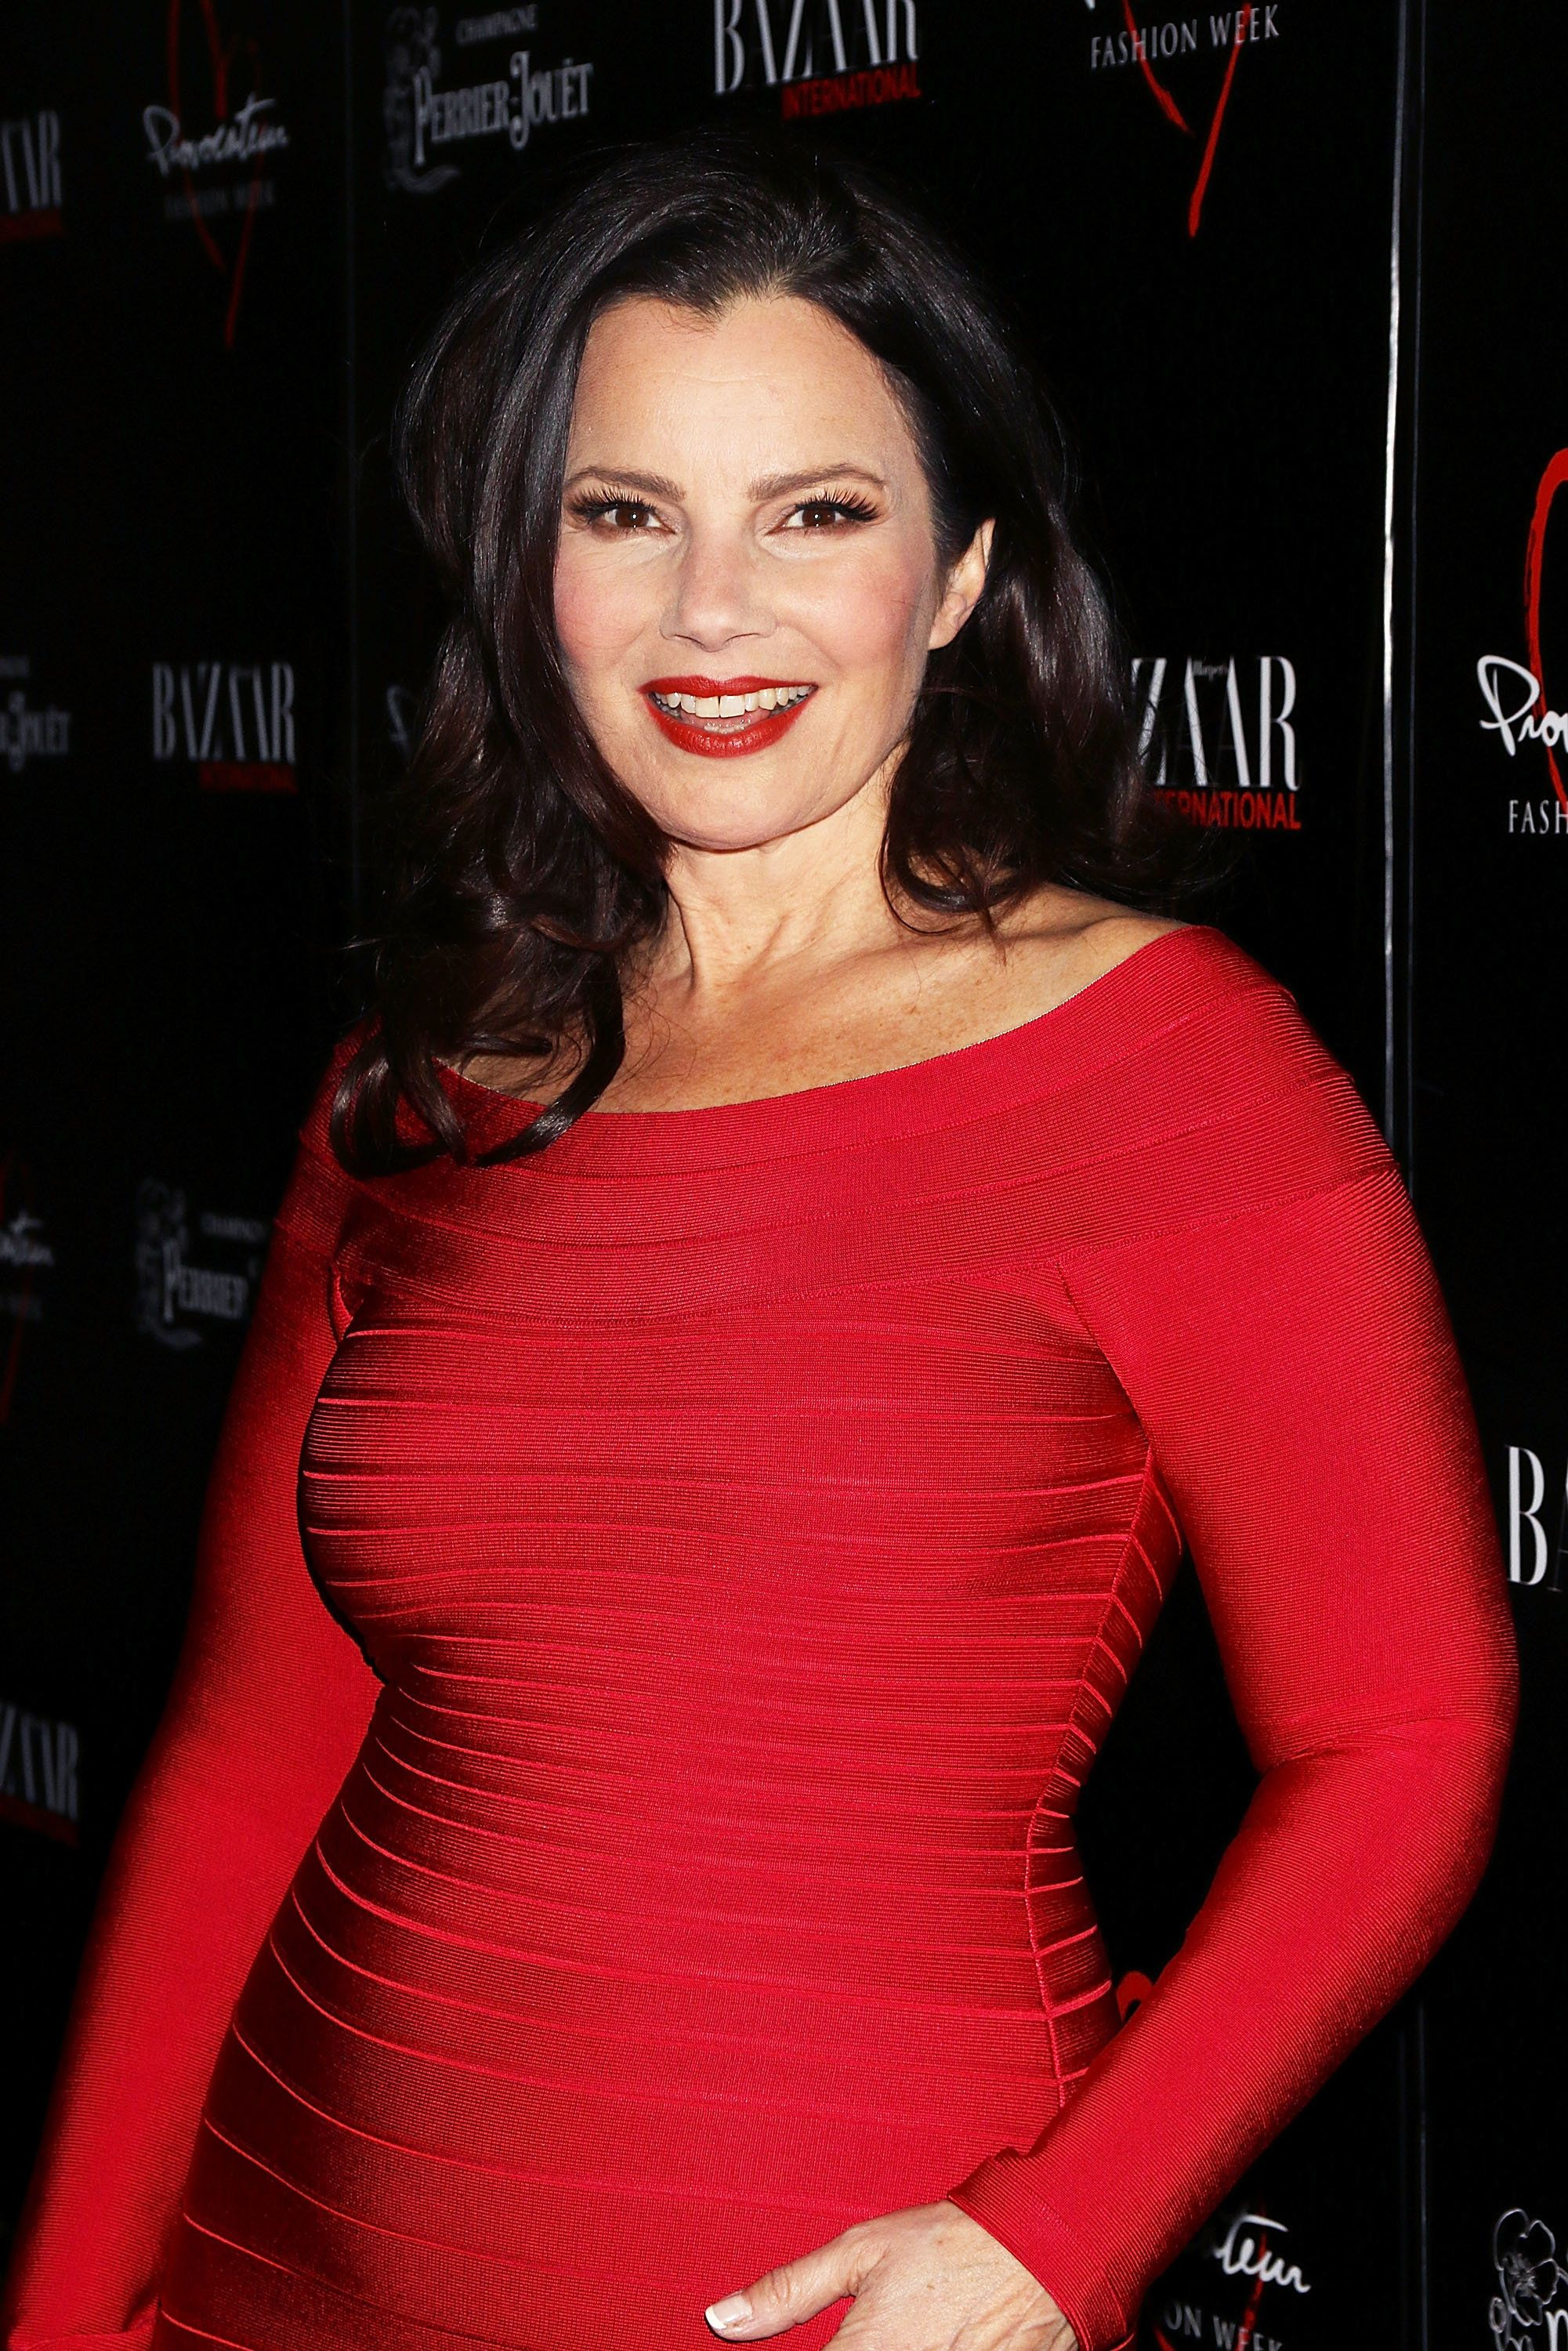 NEW YORK, NY - FEBRUARY 11:  Fran Drescher attends Harper's Bazaar International Celebrates Fashion + Cinema at Provocateur on February 11, 2016 in New York City.  (Photo by Laura Cavanaugh/Getty Images)